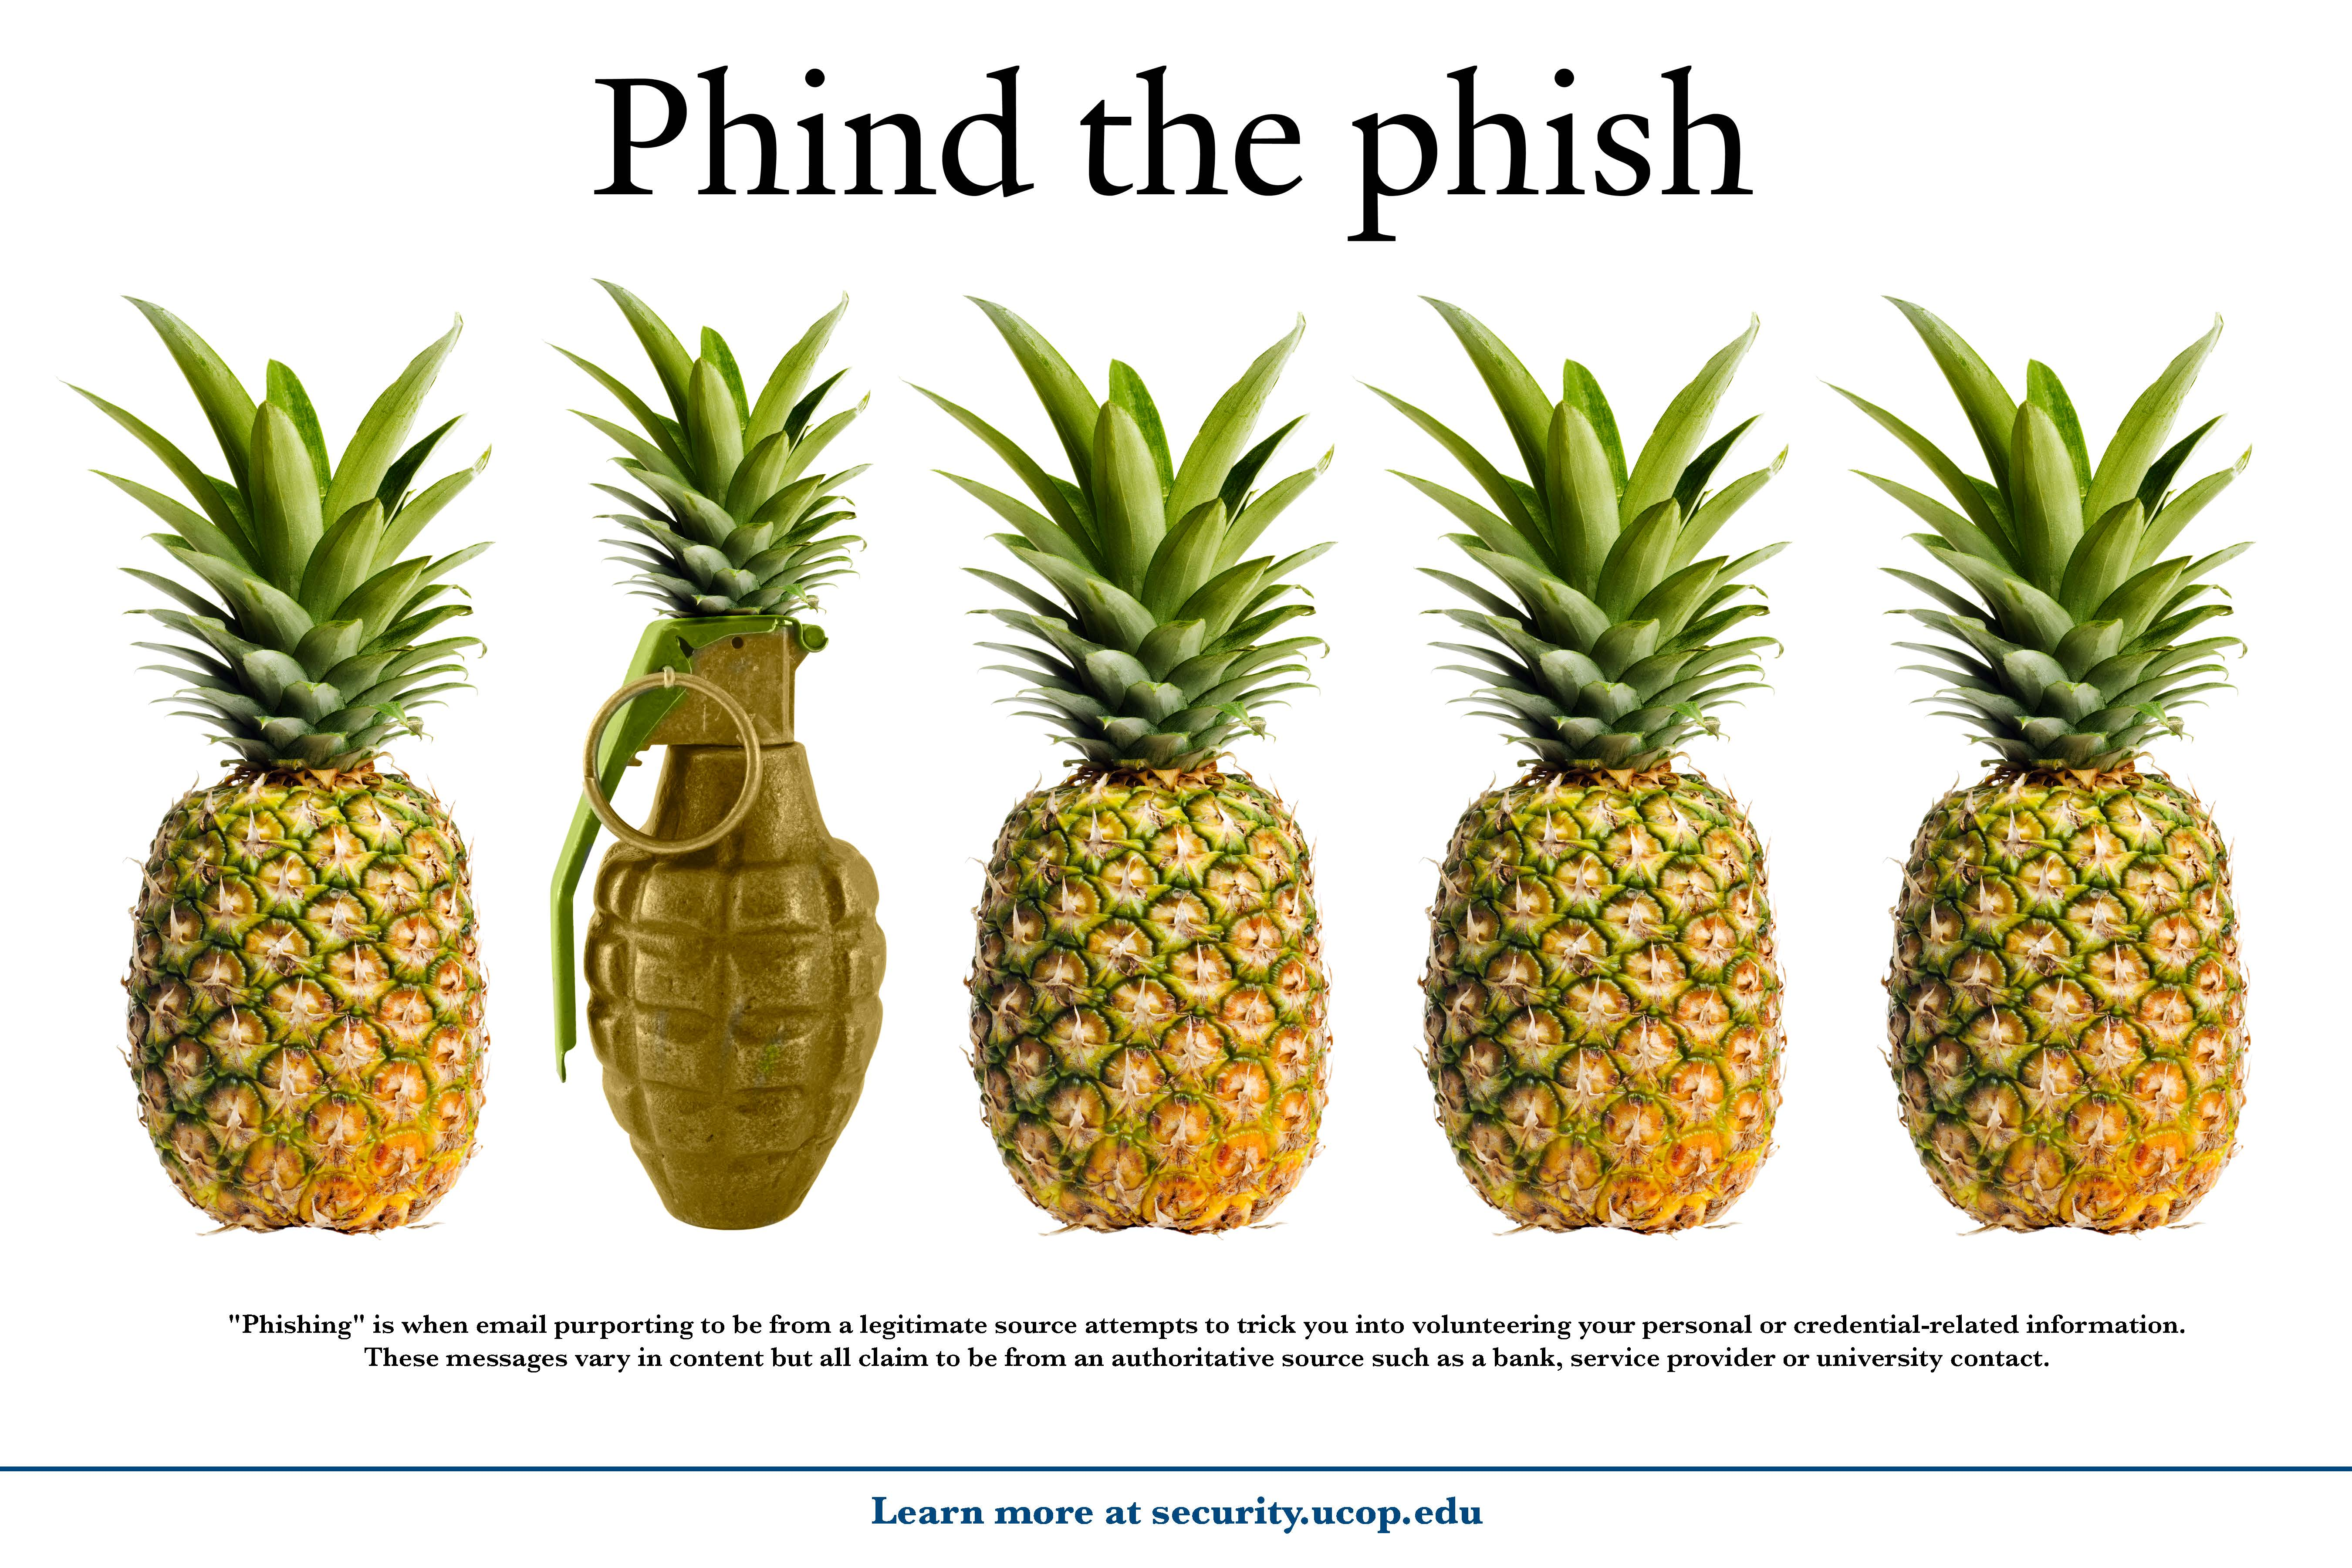 Phind the phish - pineapple-grenade